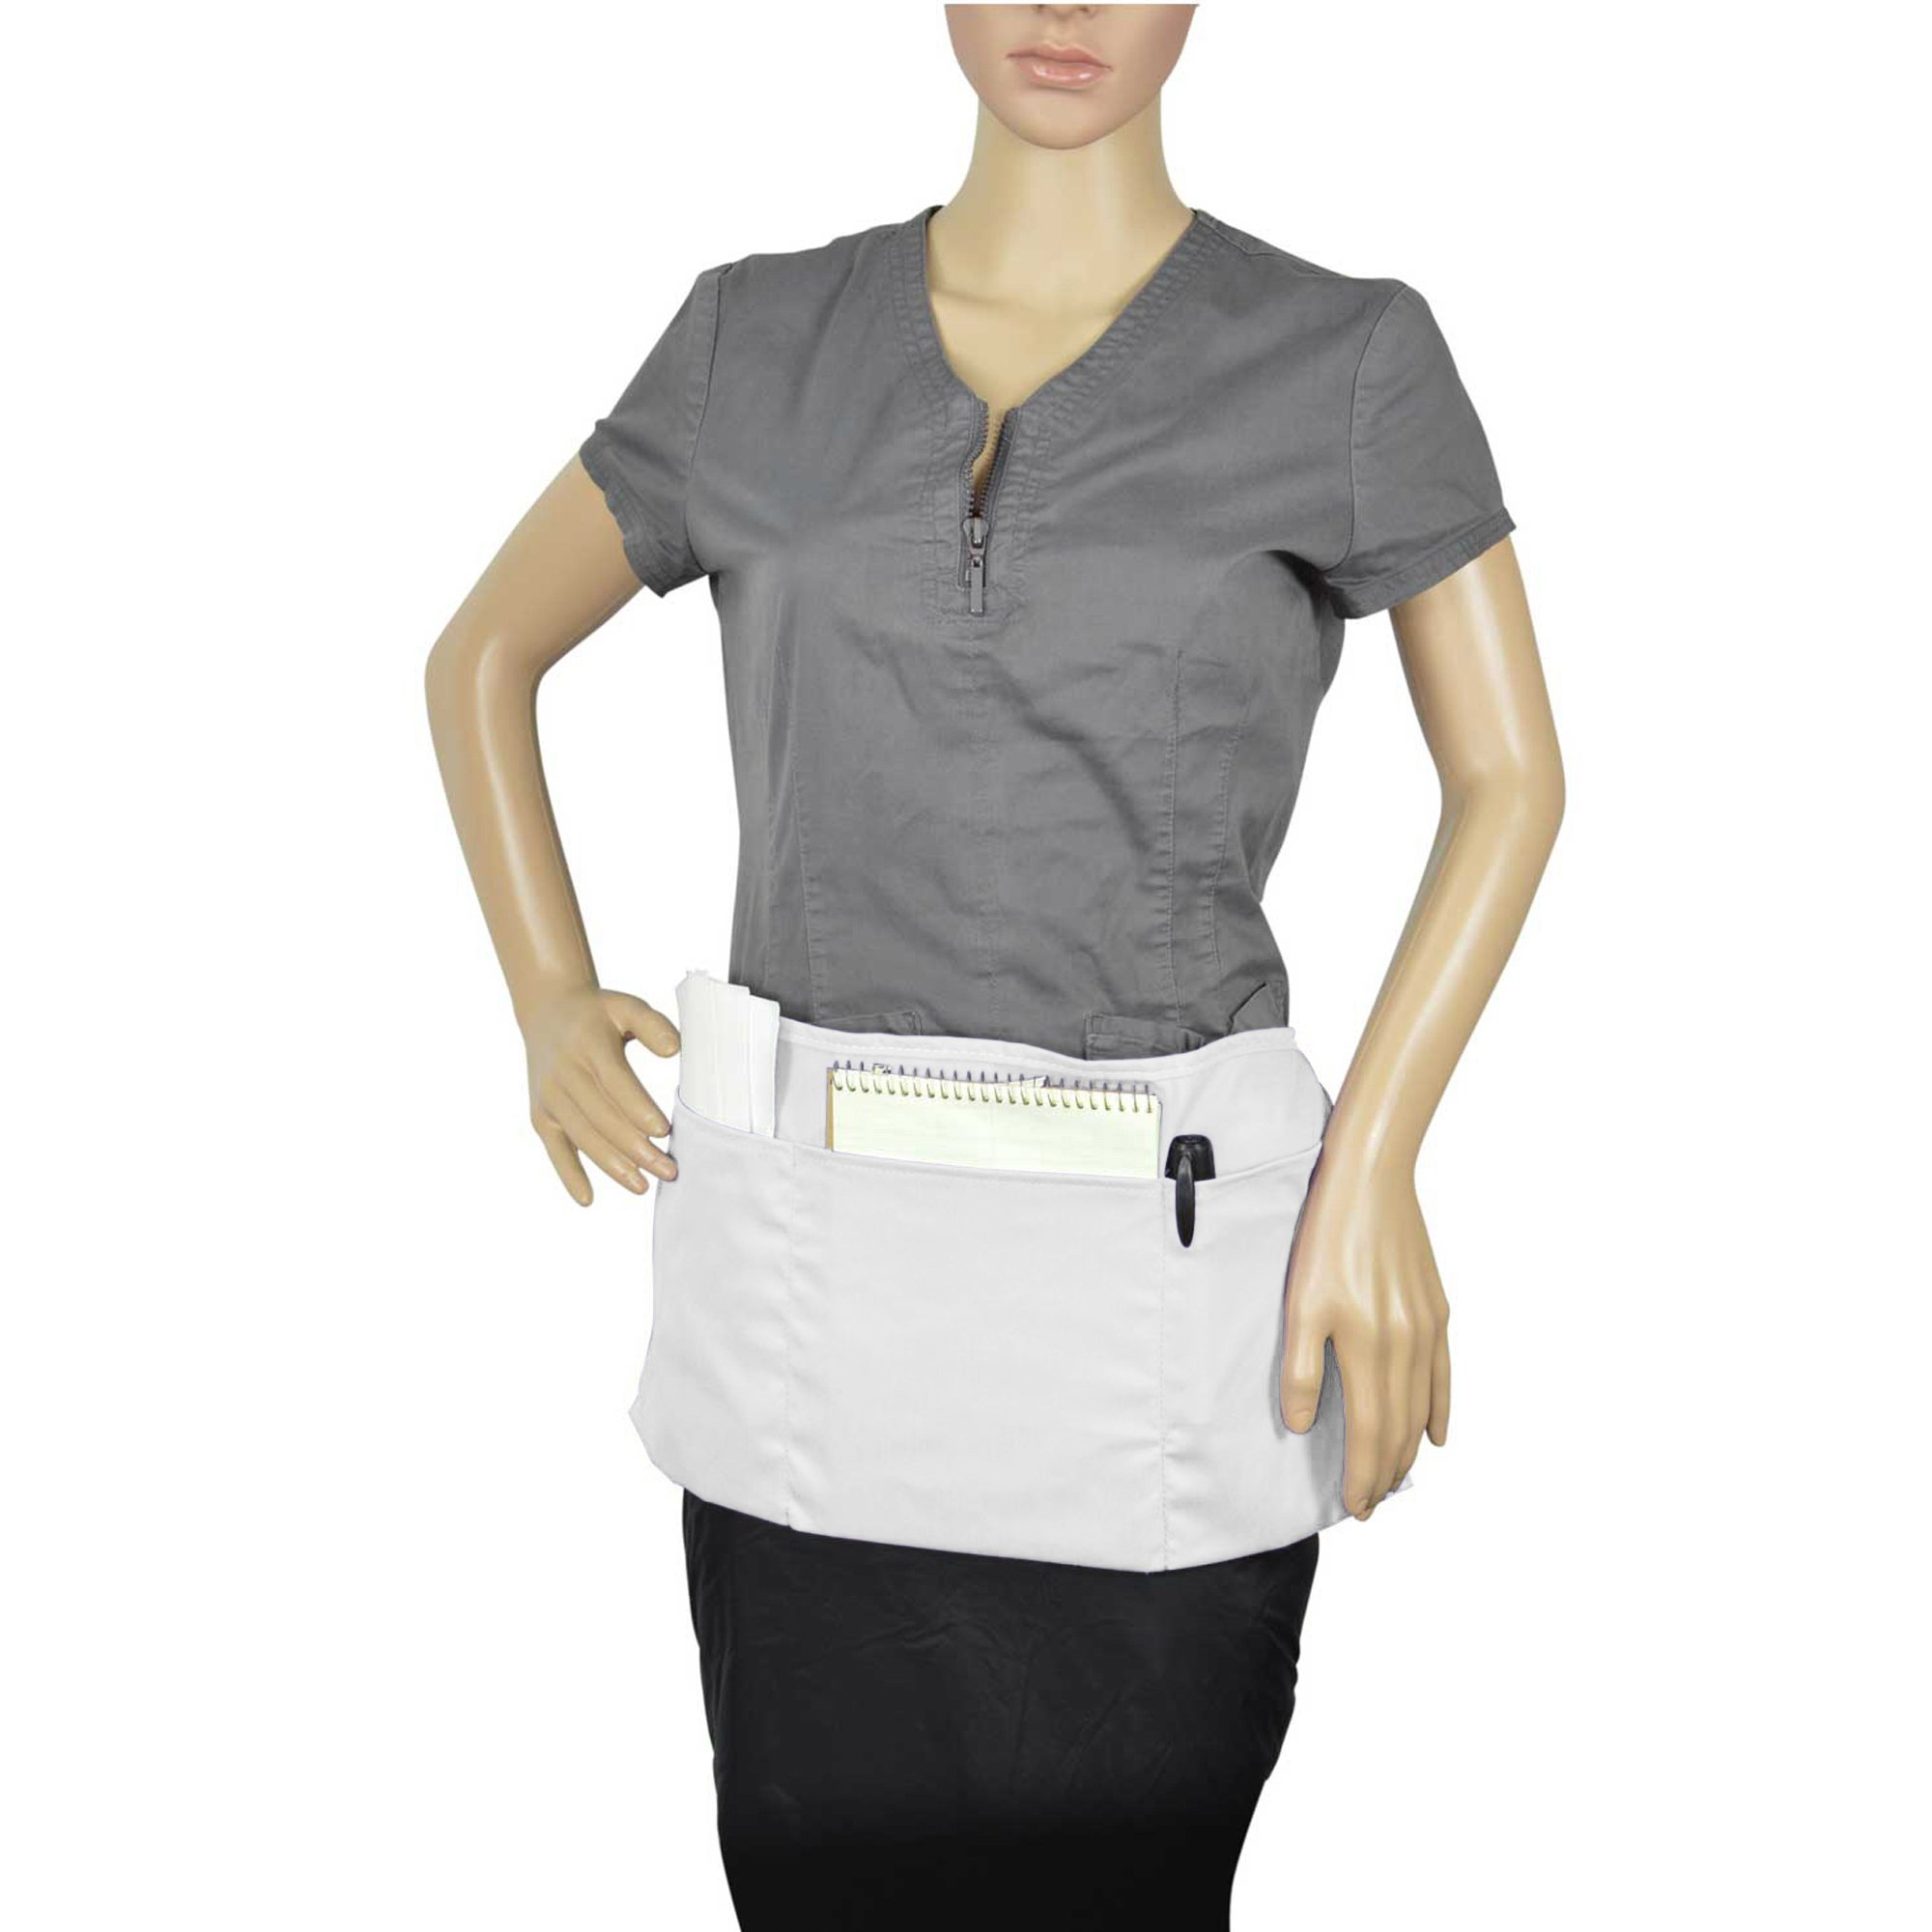 Waist Aprons Commercial Restaurant Home Bib Spun Poly Cotton Kitchen (3 Pockets) in White 100 Pack by DALIX (Image #6)